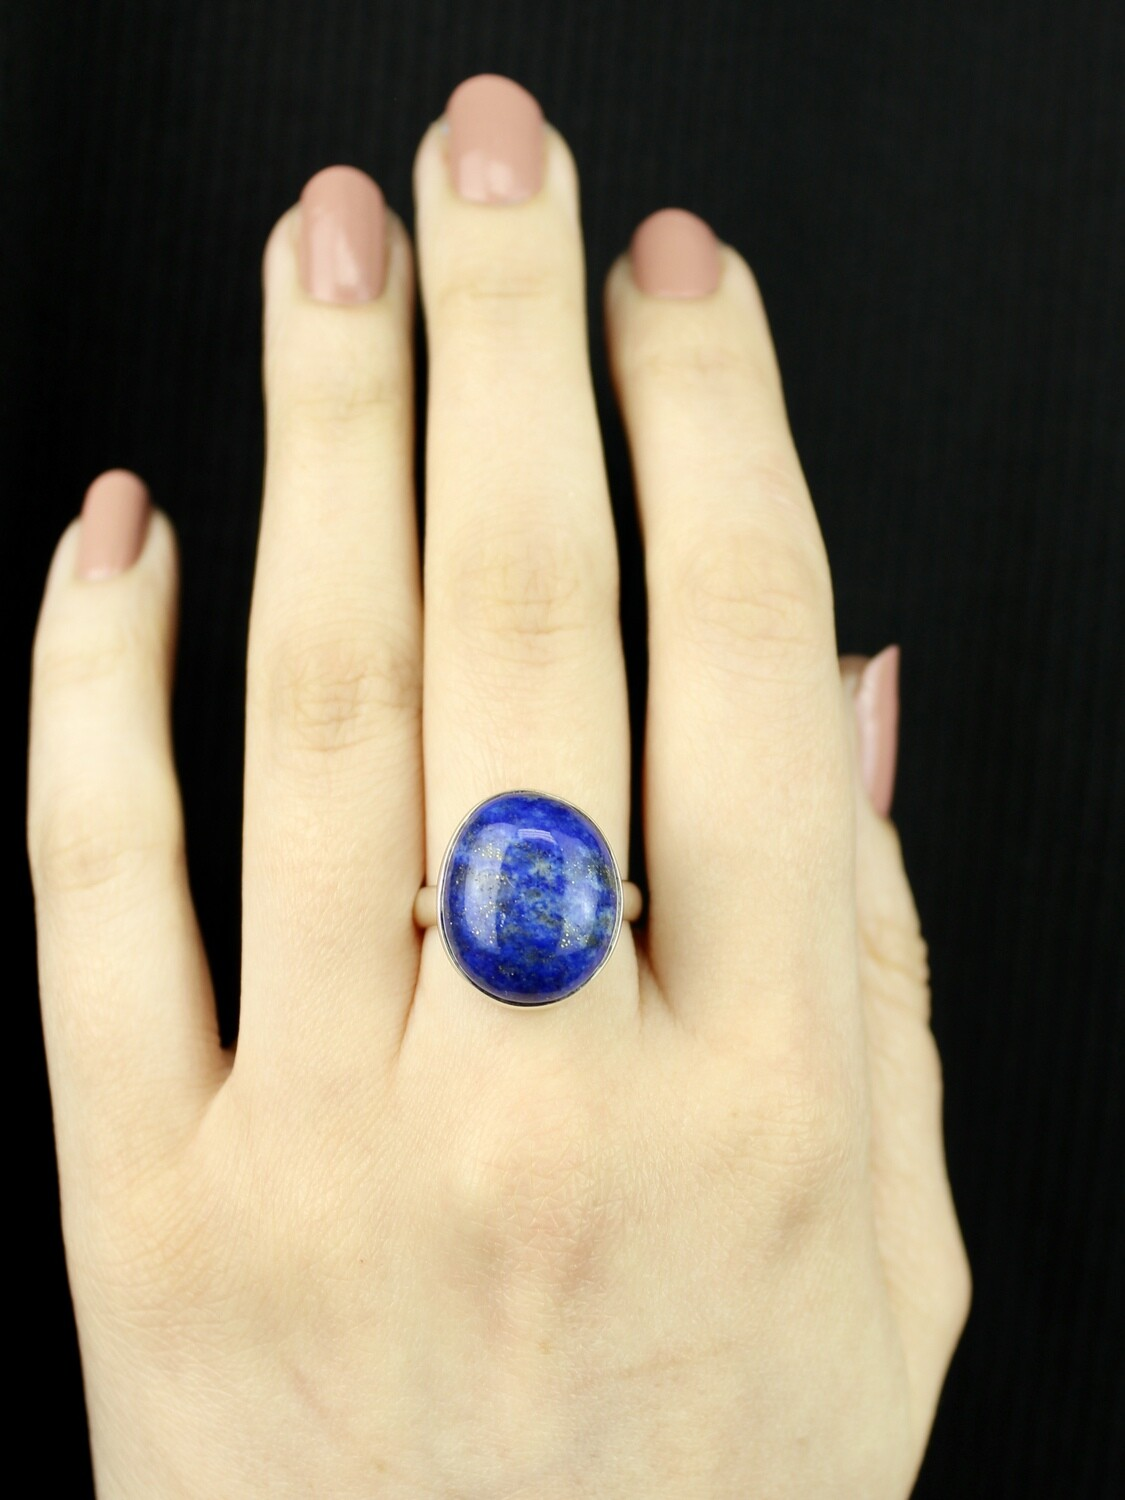 SIZE 7.25 - Sterling Silver Lapis Lazuli Ring - RIG7106